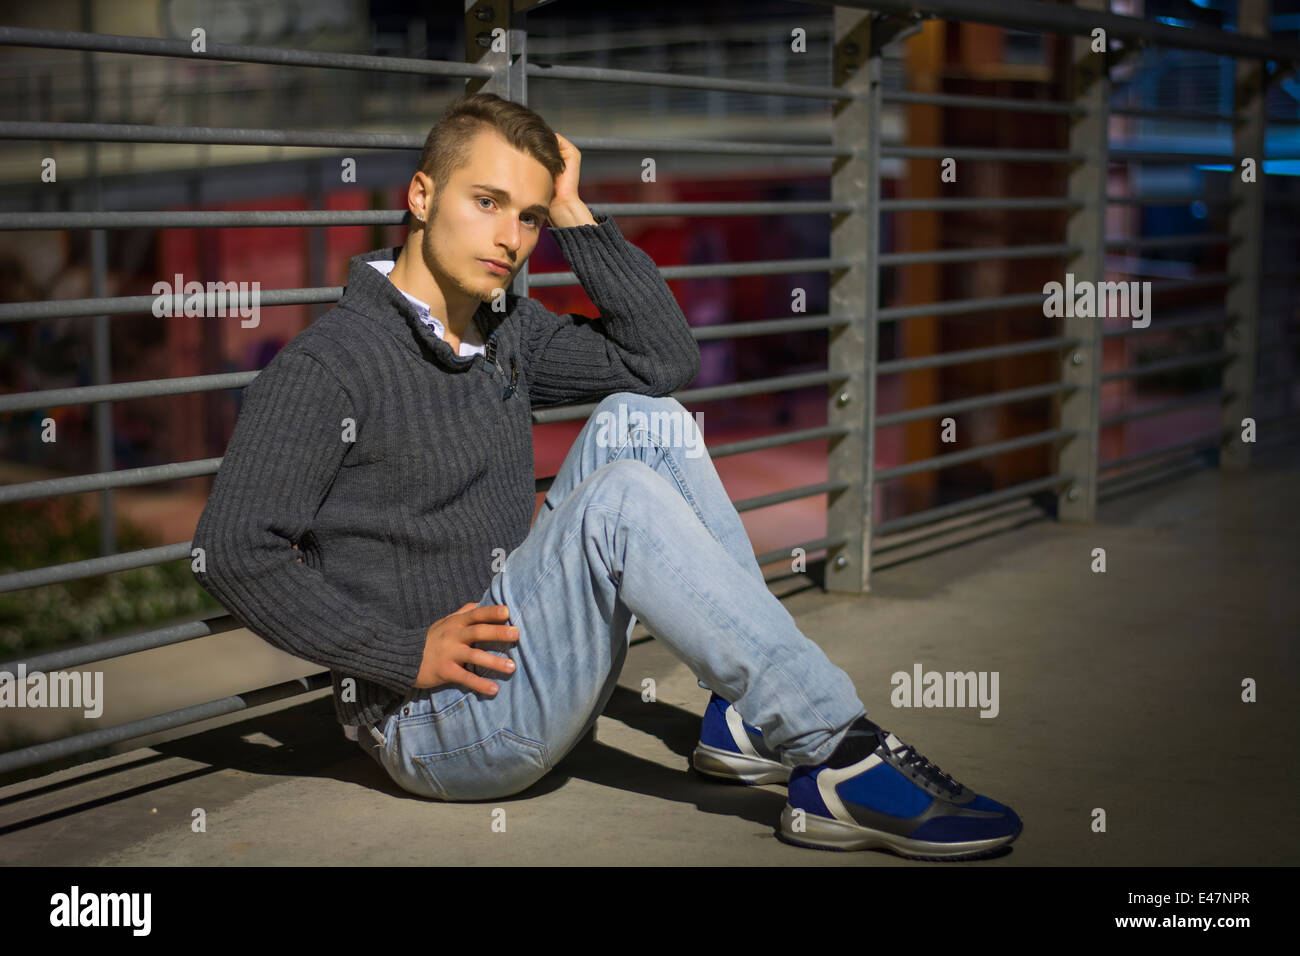 Handsome blond young man sitting alone in urban setting, looking at camera, night shot - Stock Image